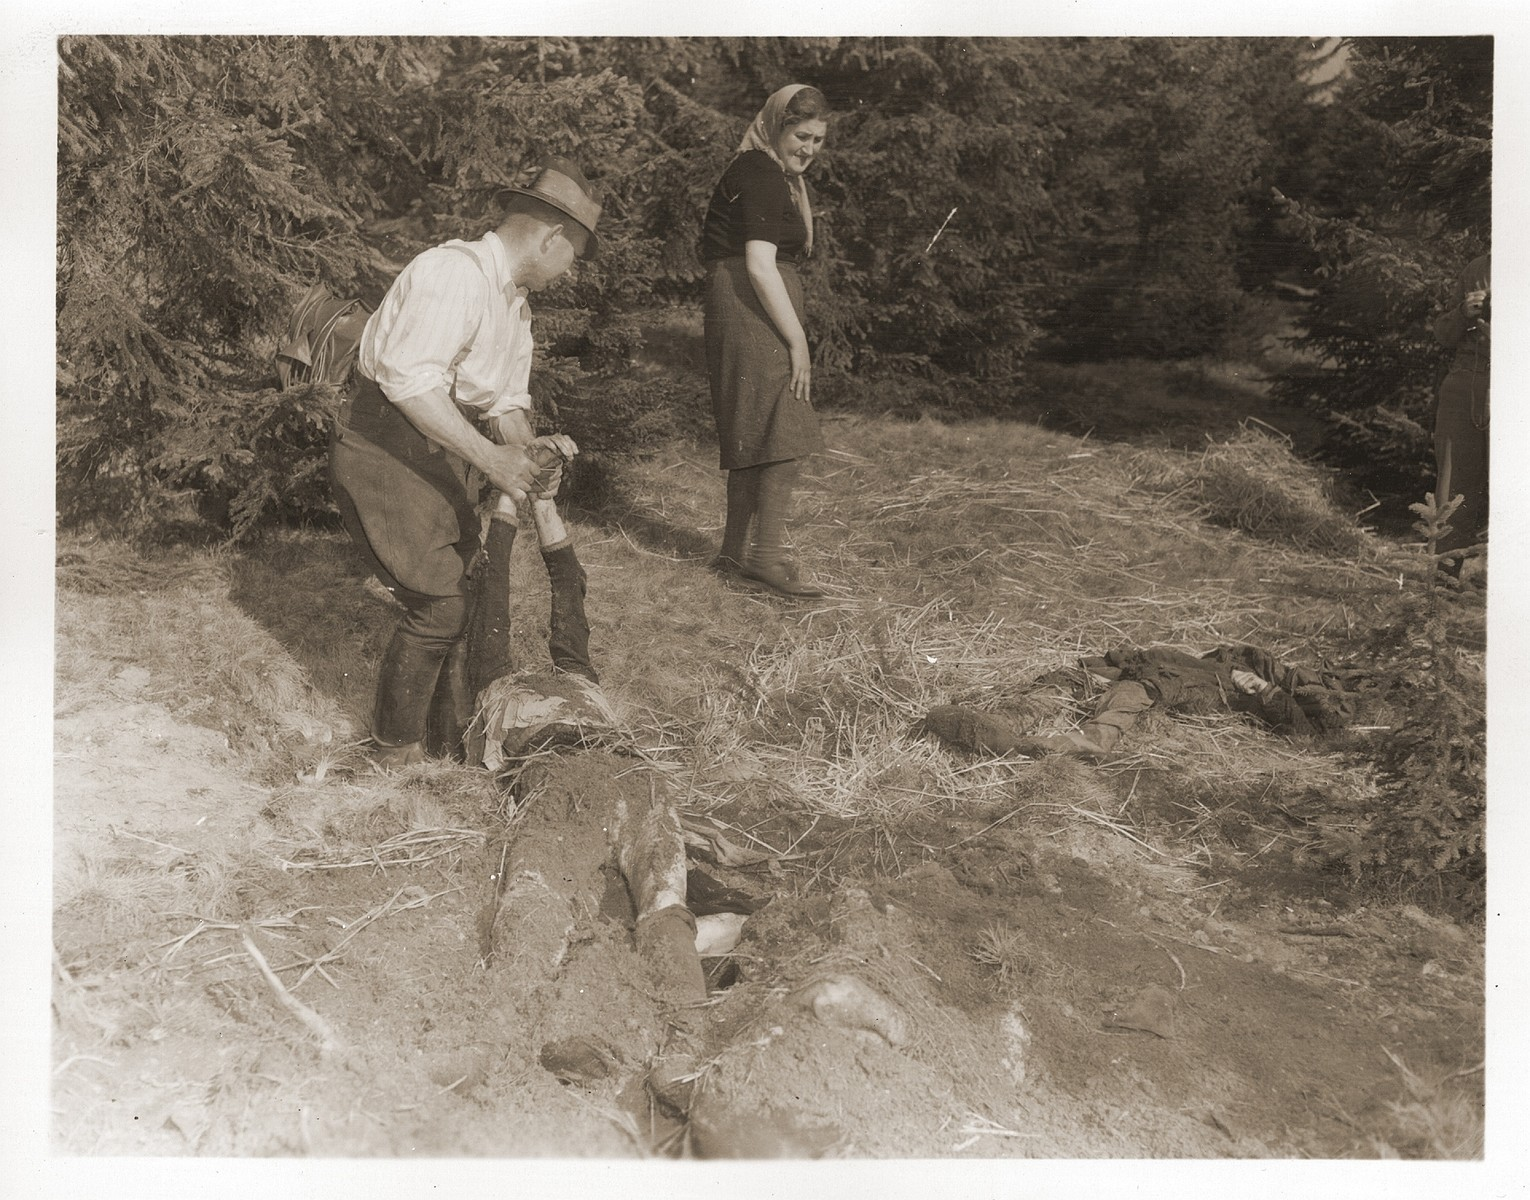 A German civilian exhumes a mass grave near Volary containing the bodies of Jewish women who died at the end of a death march from Helmbrechts, a sub-camp of Flossenbuerg.  The woman, Mina Singer, is a survivor of the march, and was the oldest of the group.